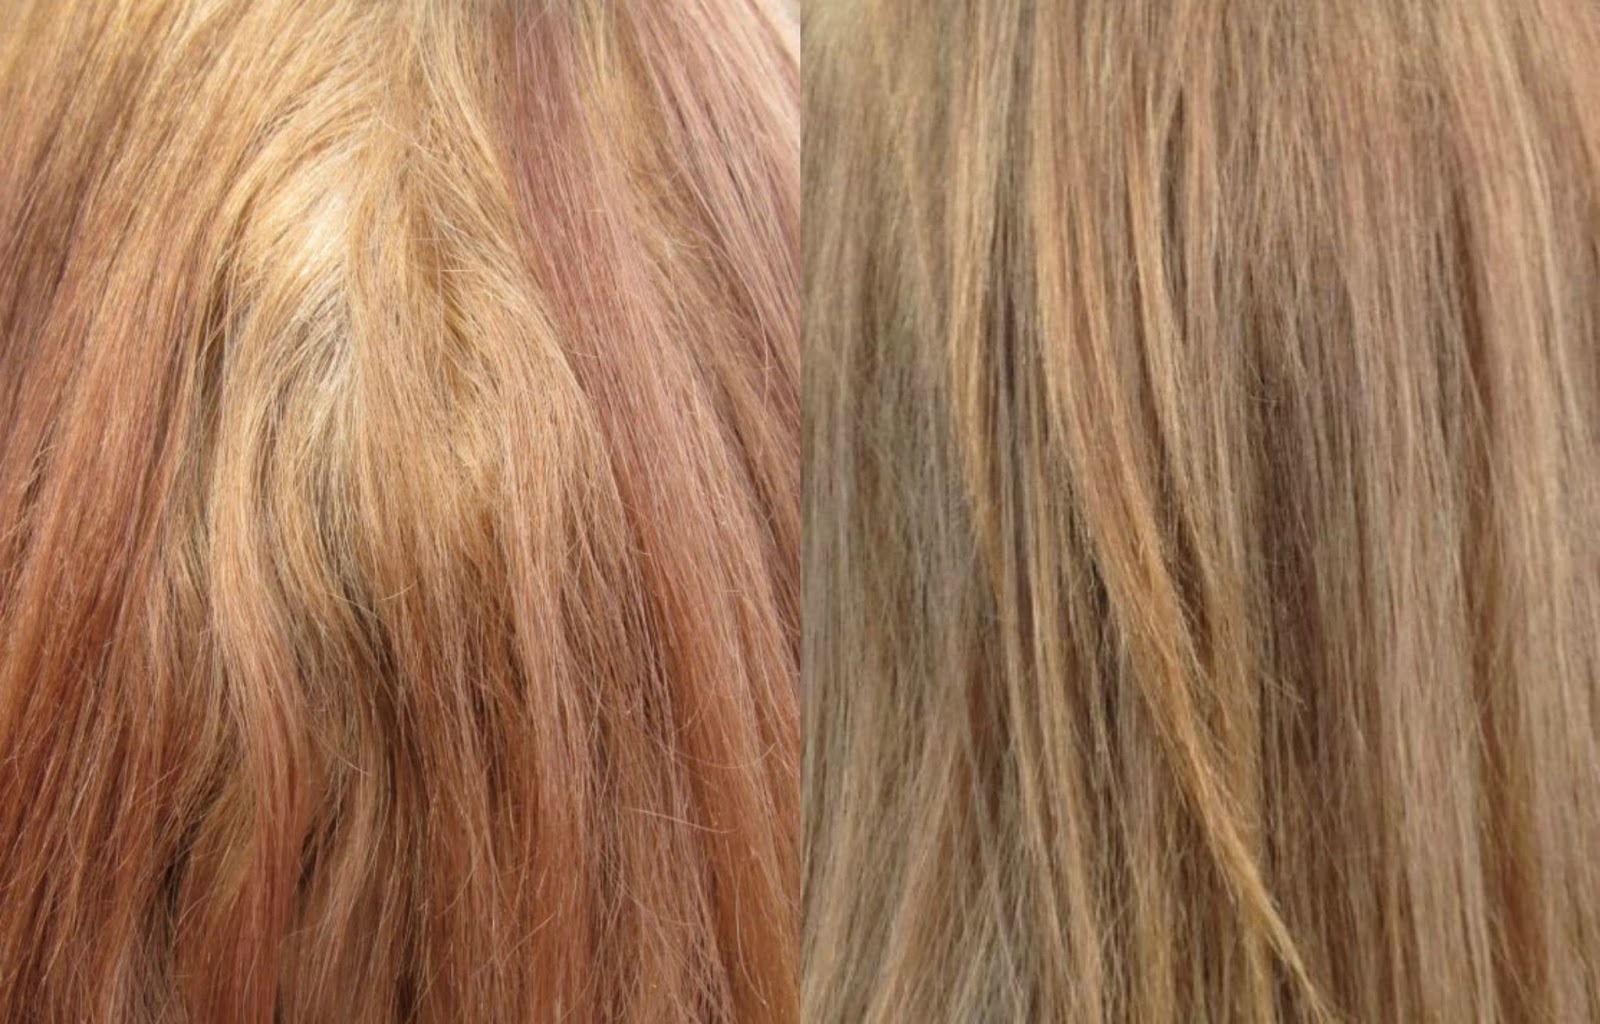 Dark Blonde Hair Color Pictures Dyed hair after using decolour